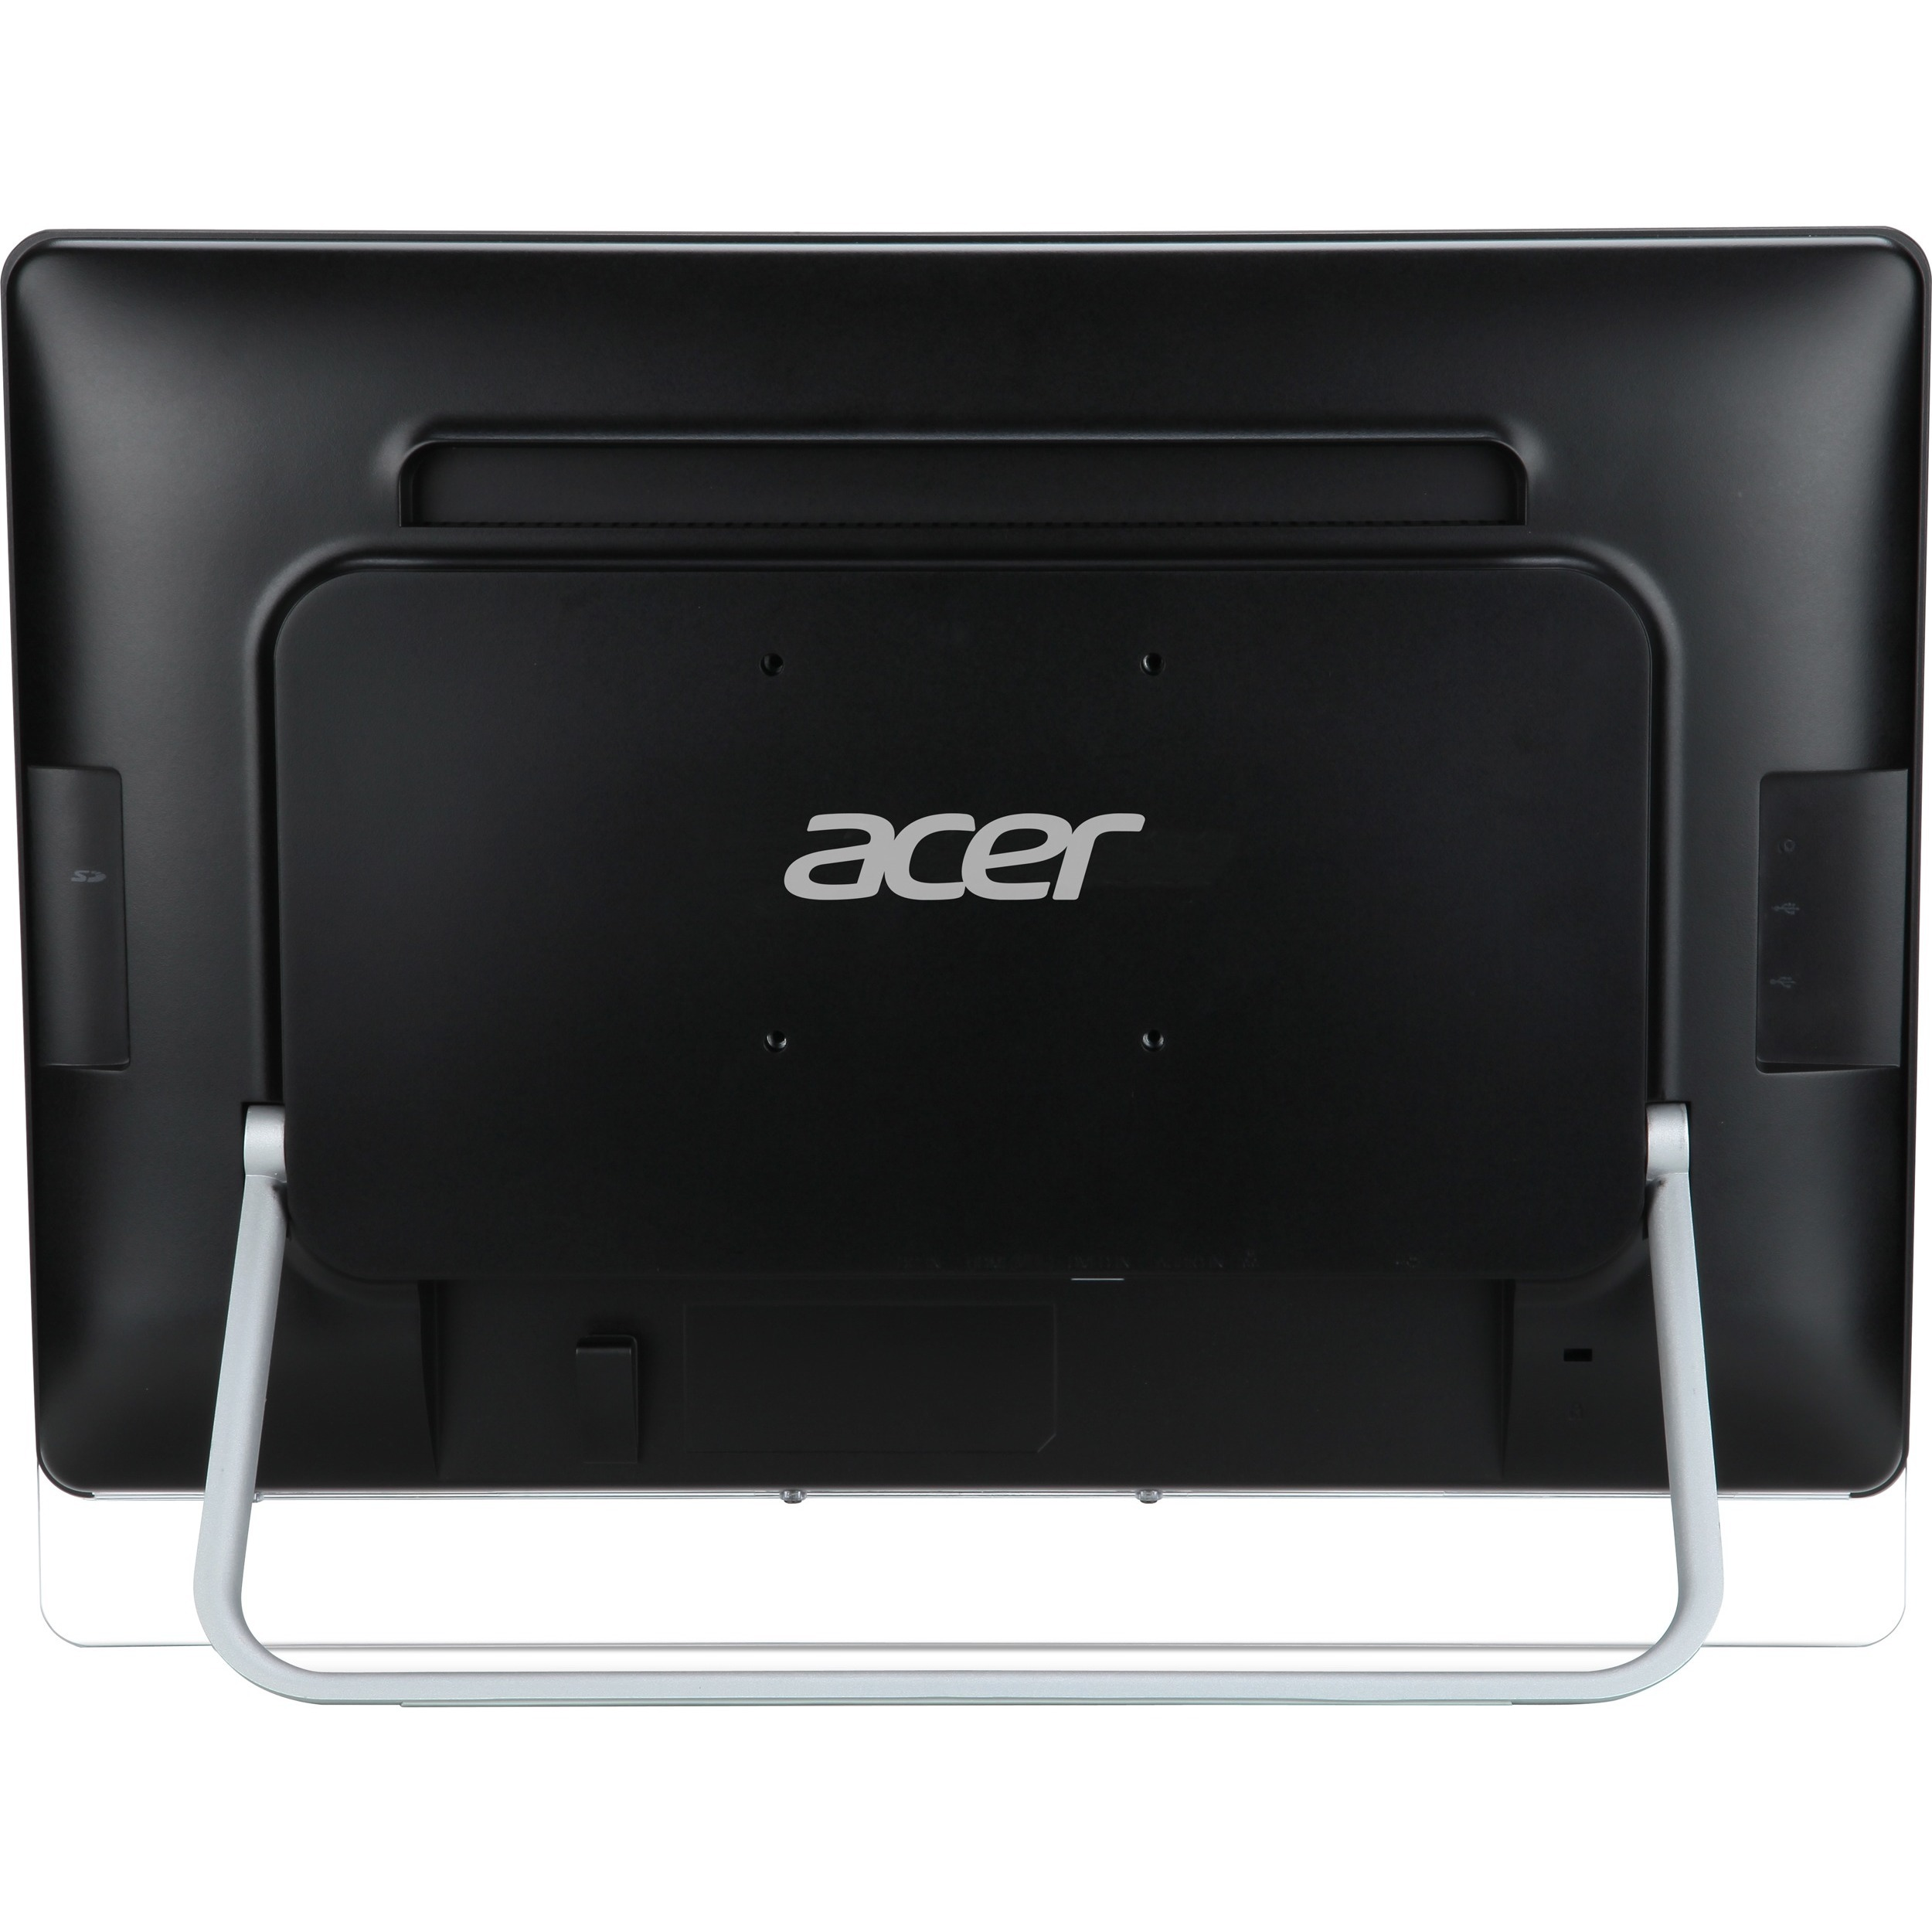 Acer UT220HQL 54.6 cm 21.5inch LCD Touchscreen Monitor - 16:9 - 8 ms